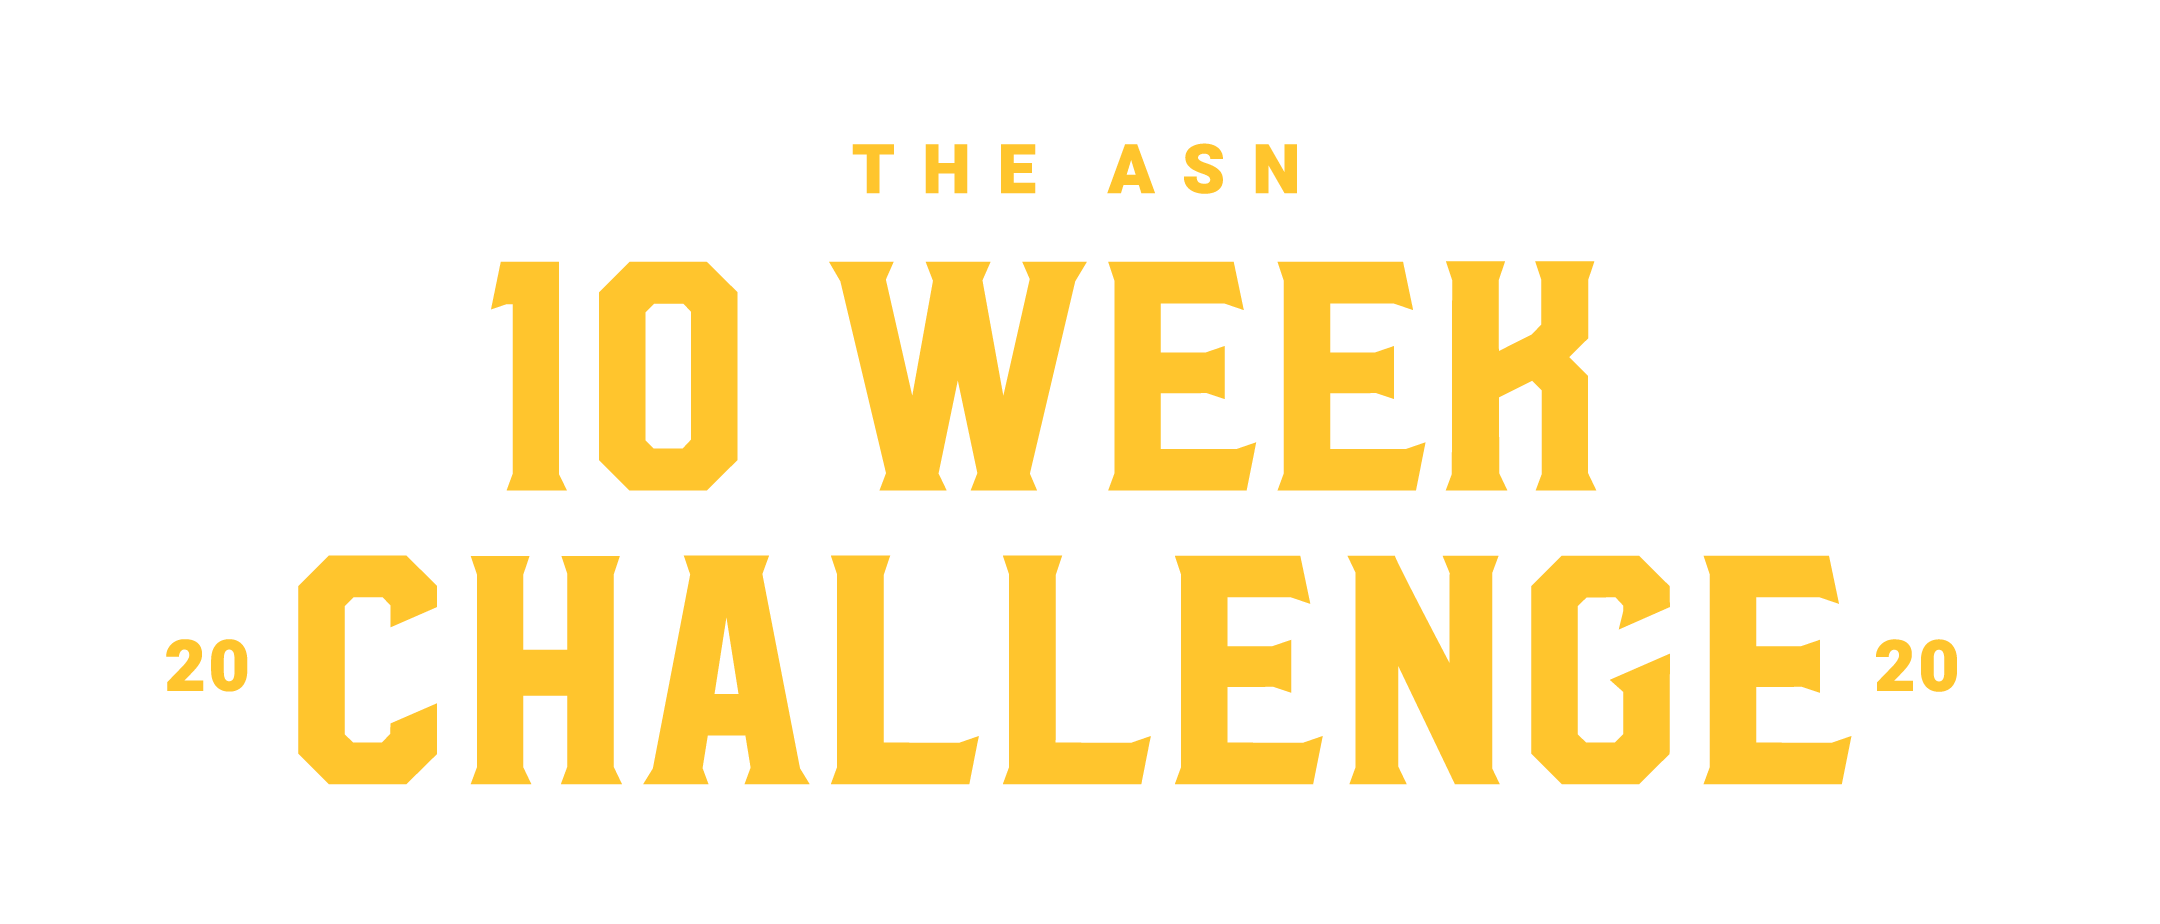 The ASN 10 Week Challenge